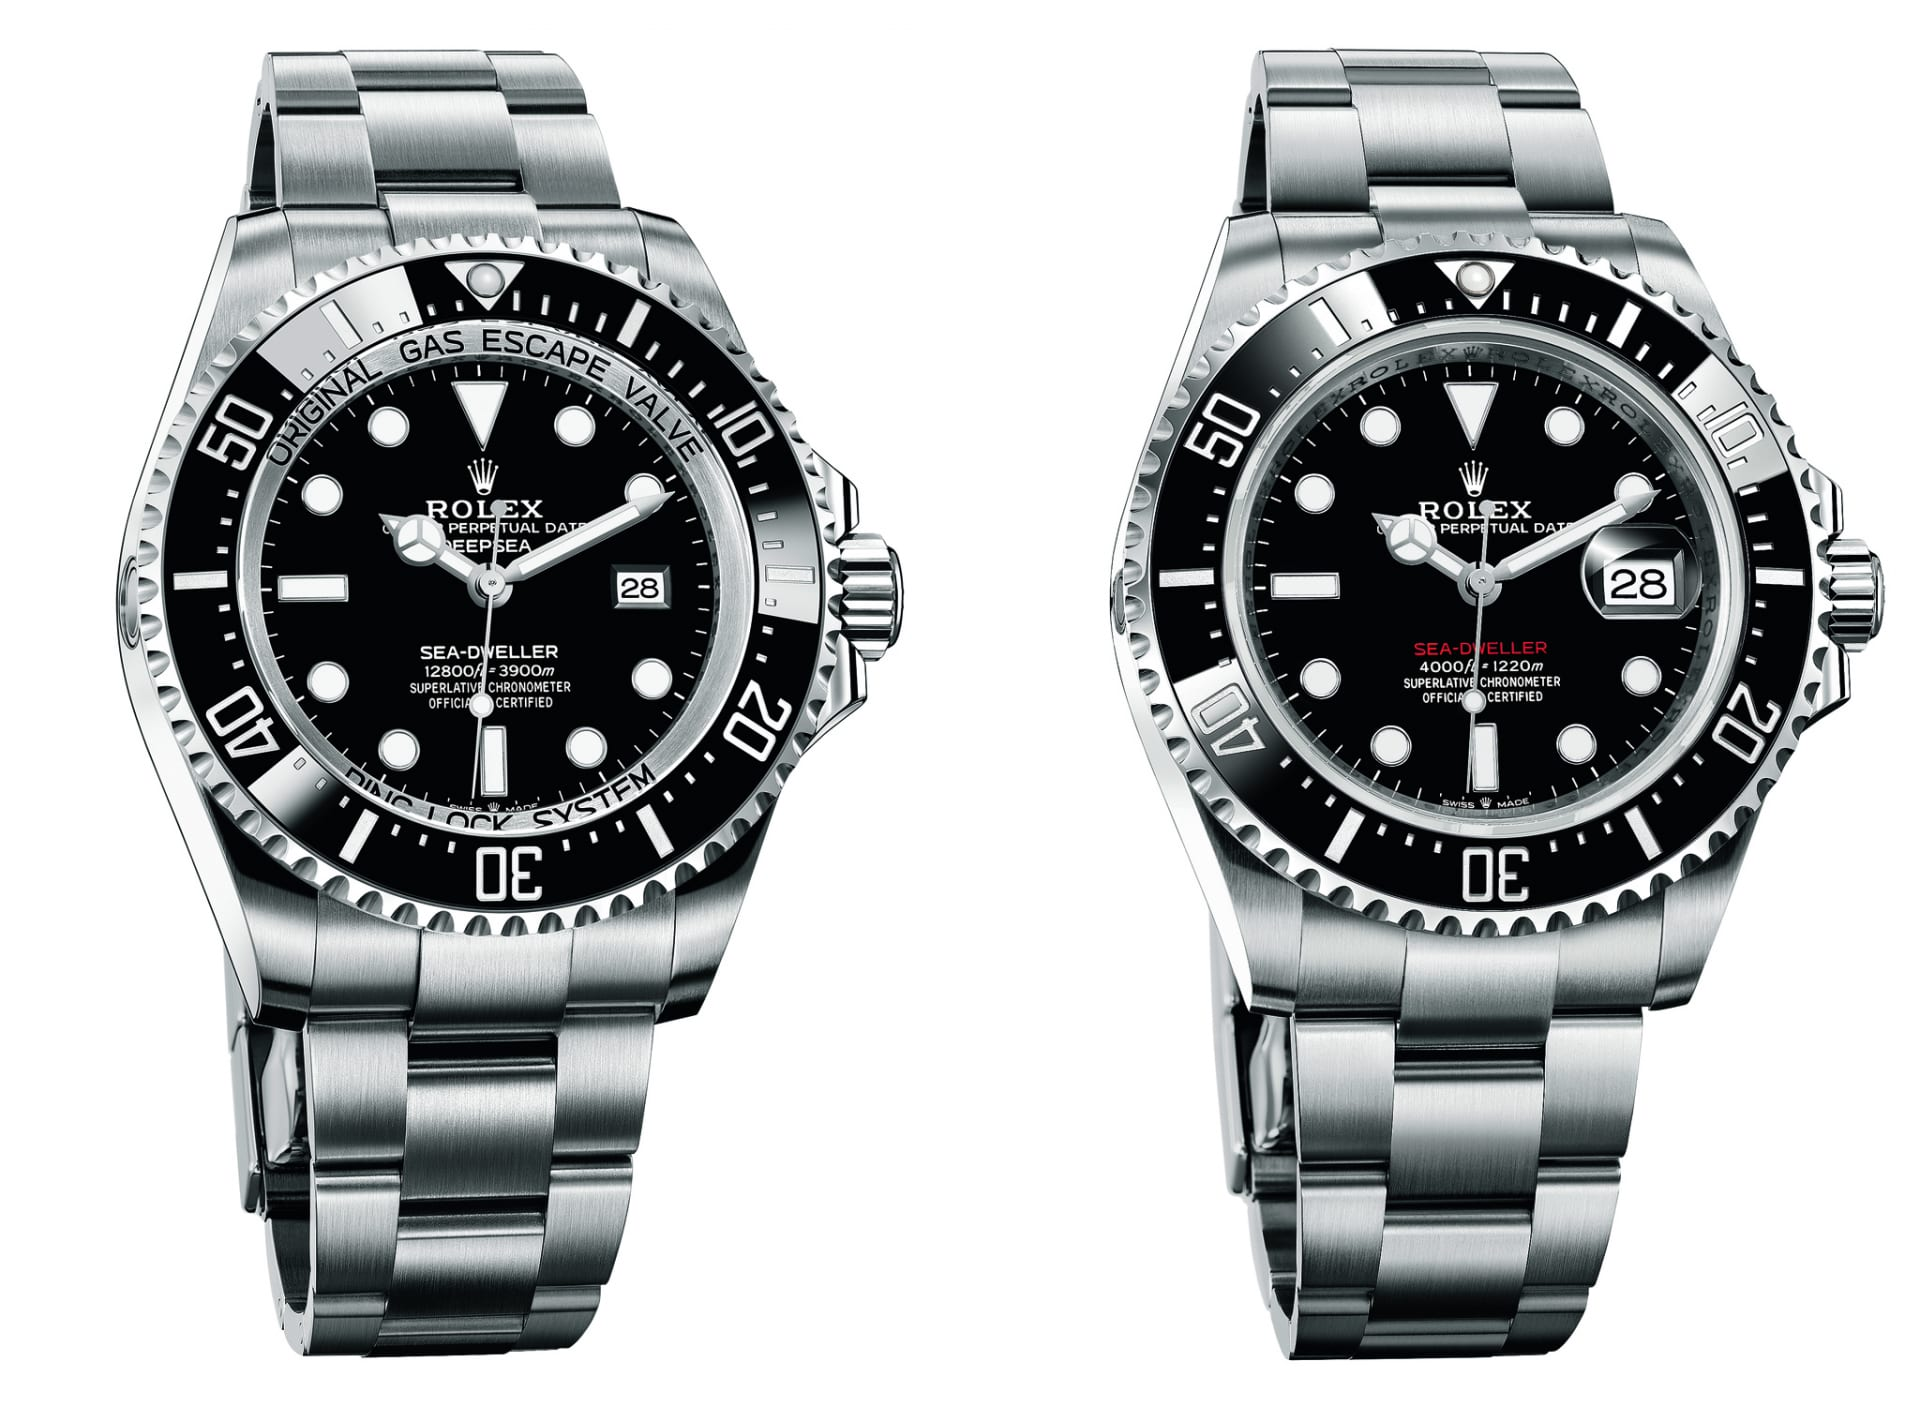 What's in and what's out for Rolex in 2020?